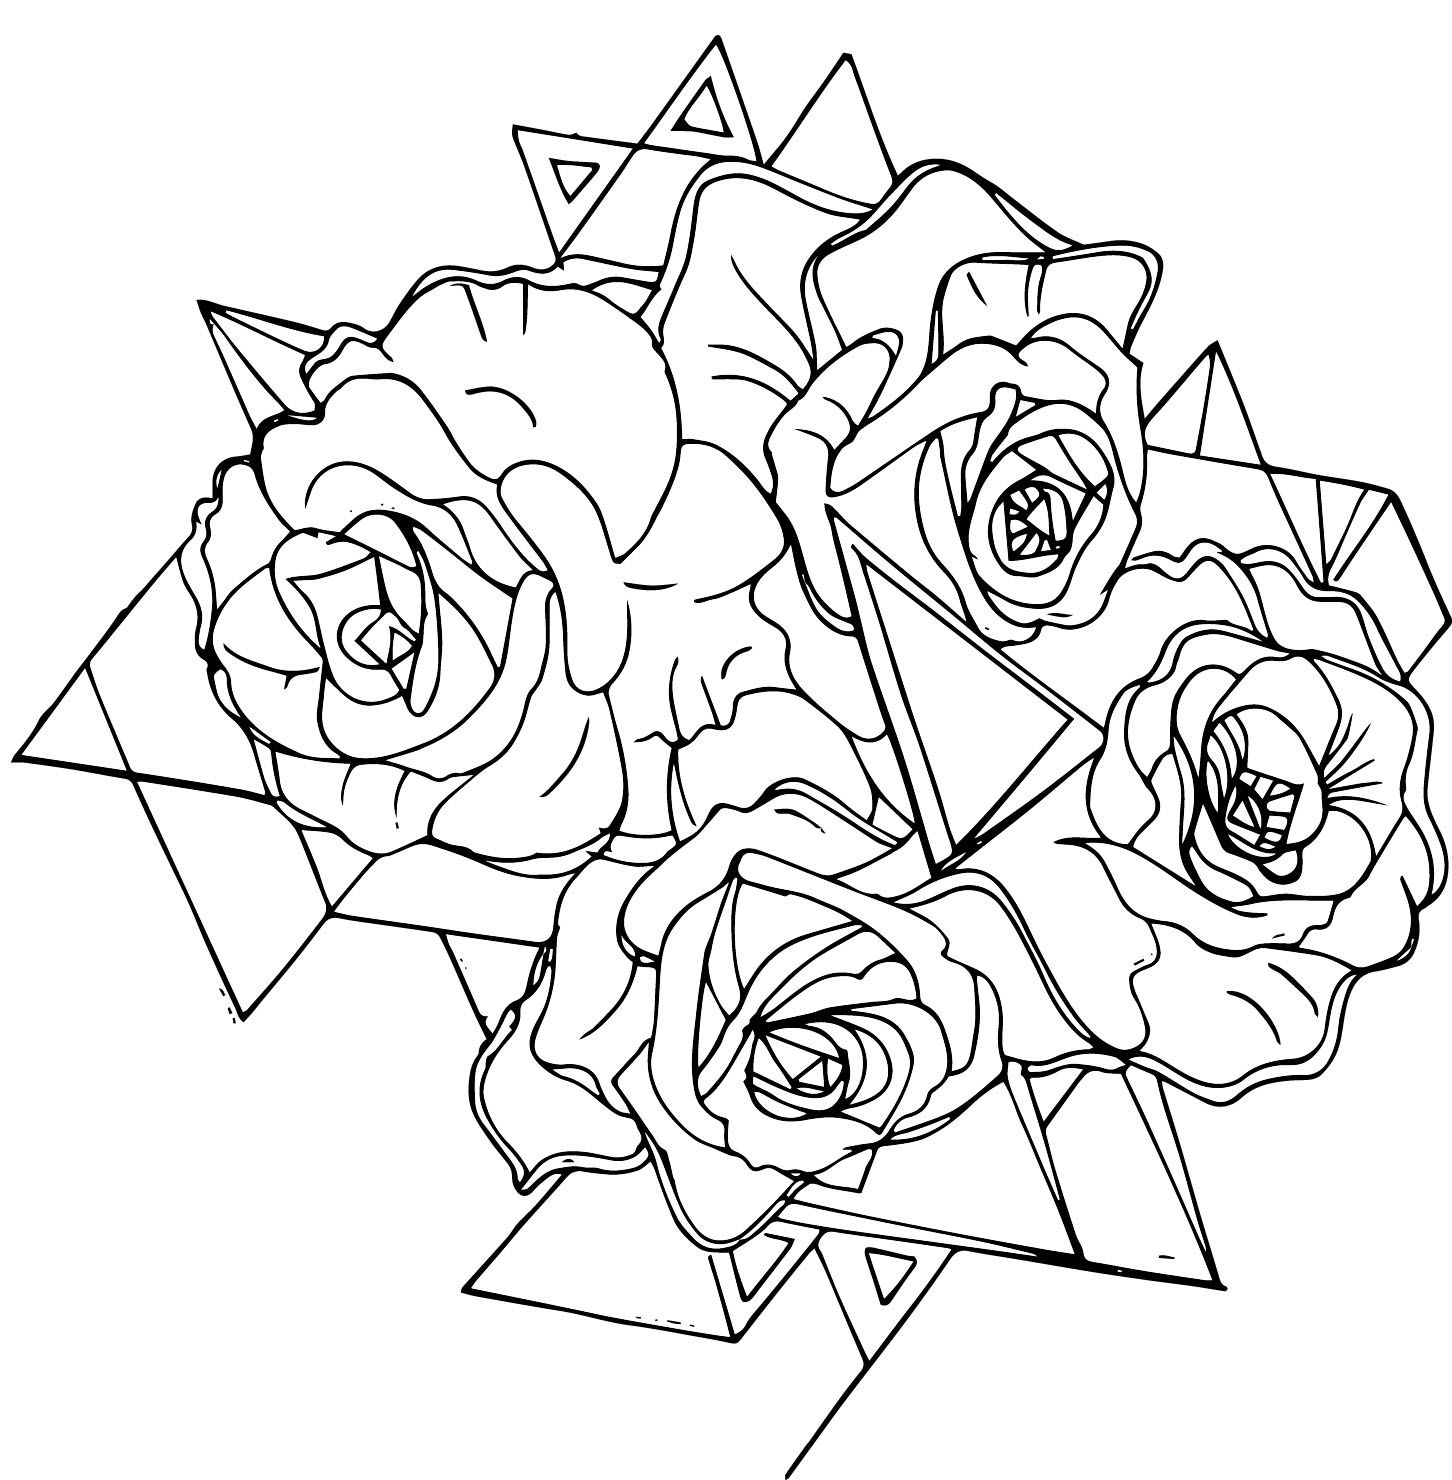 blue roses aesthetic pattern0